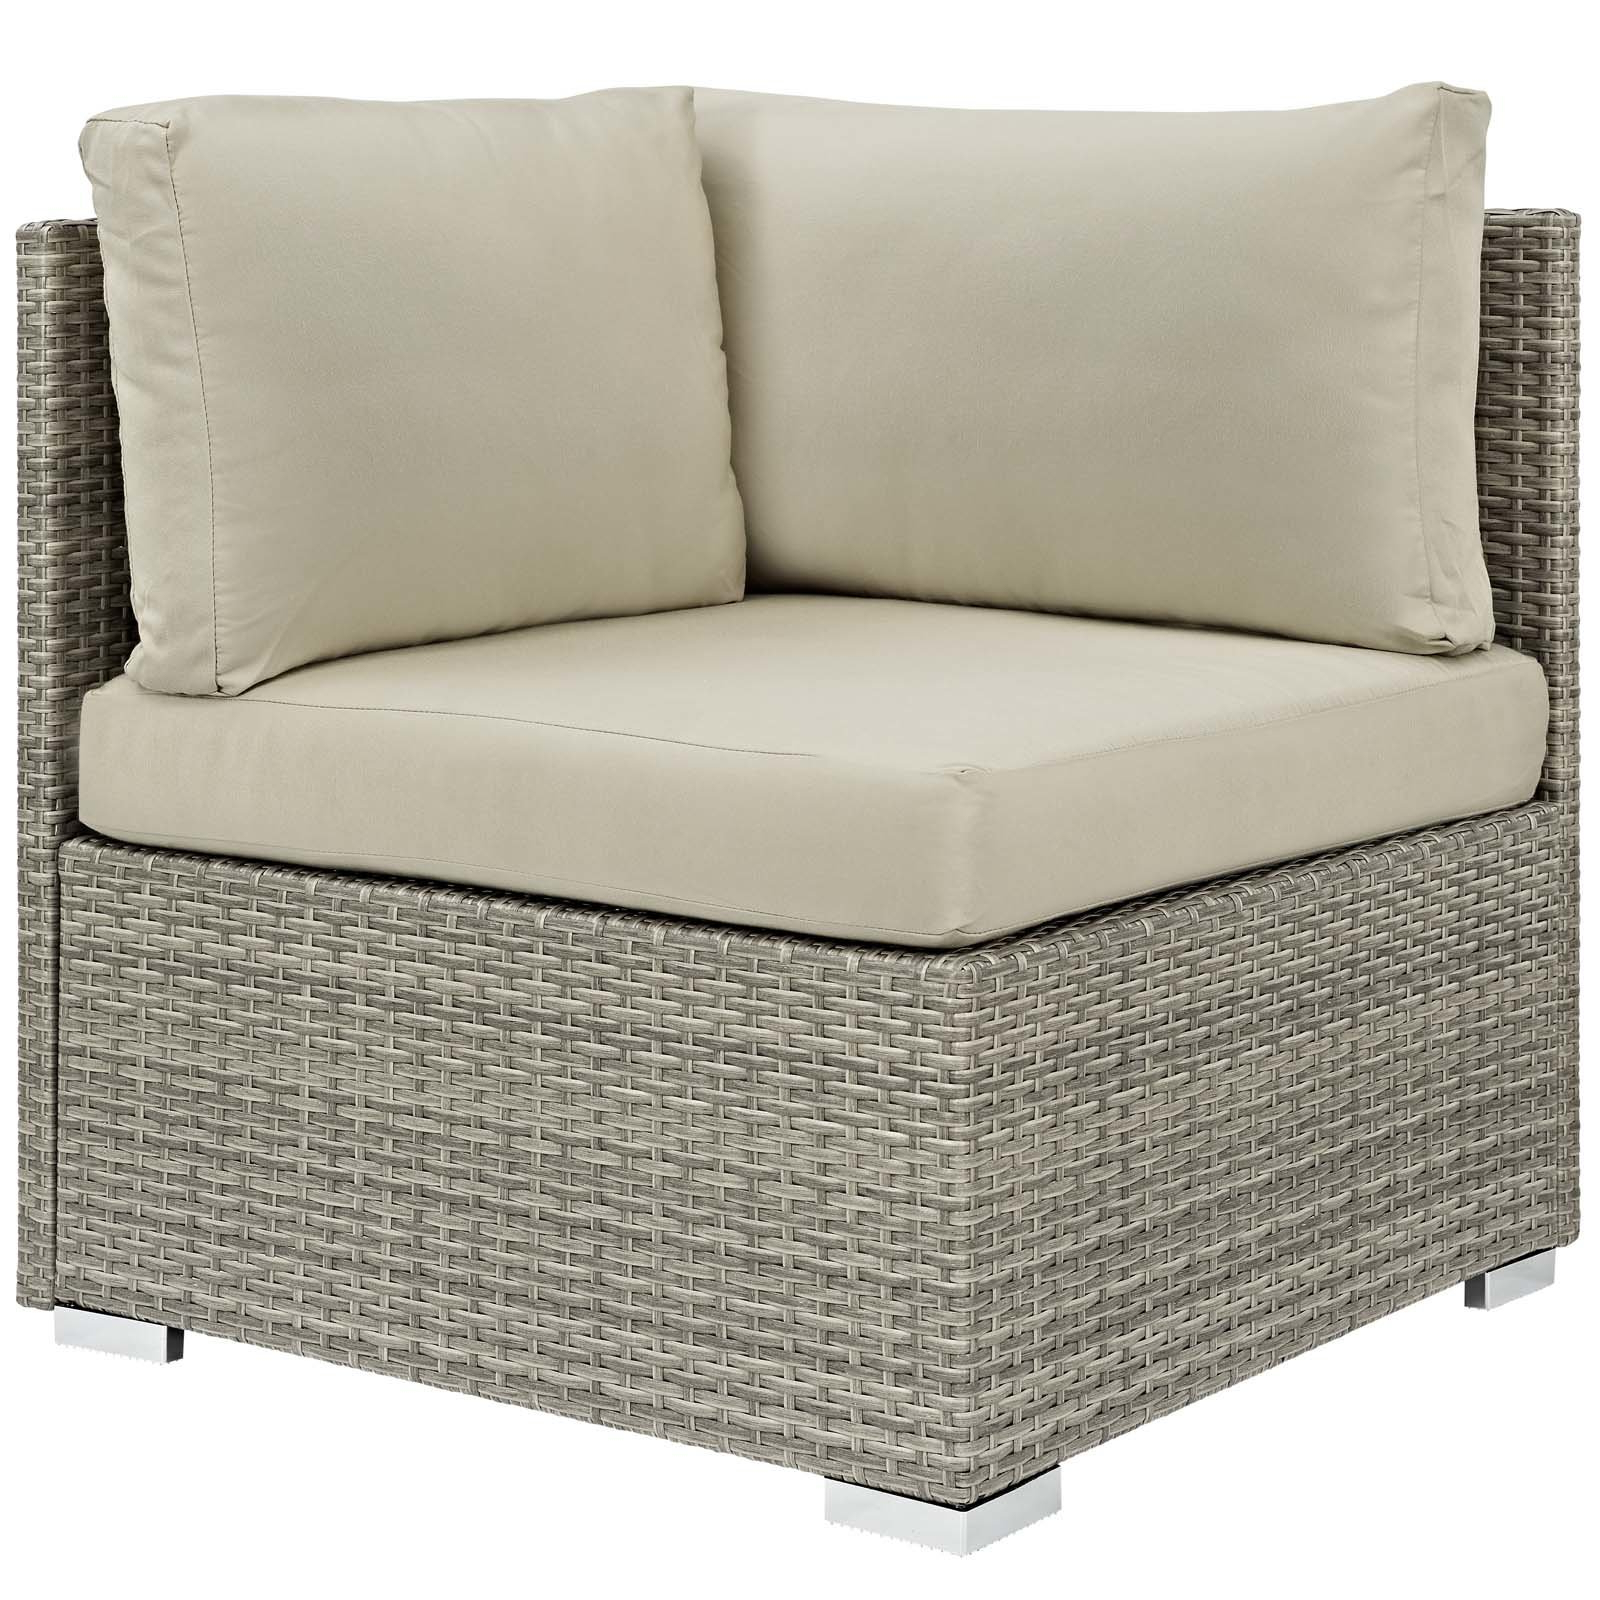 Joss & Main For Keever Patio Sofas With Sunbrella Cushions (View 8 of 20)